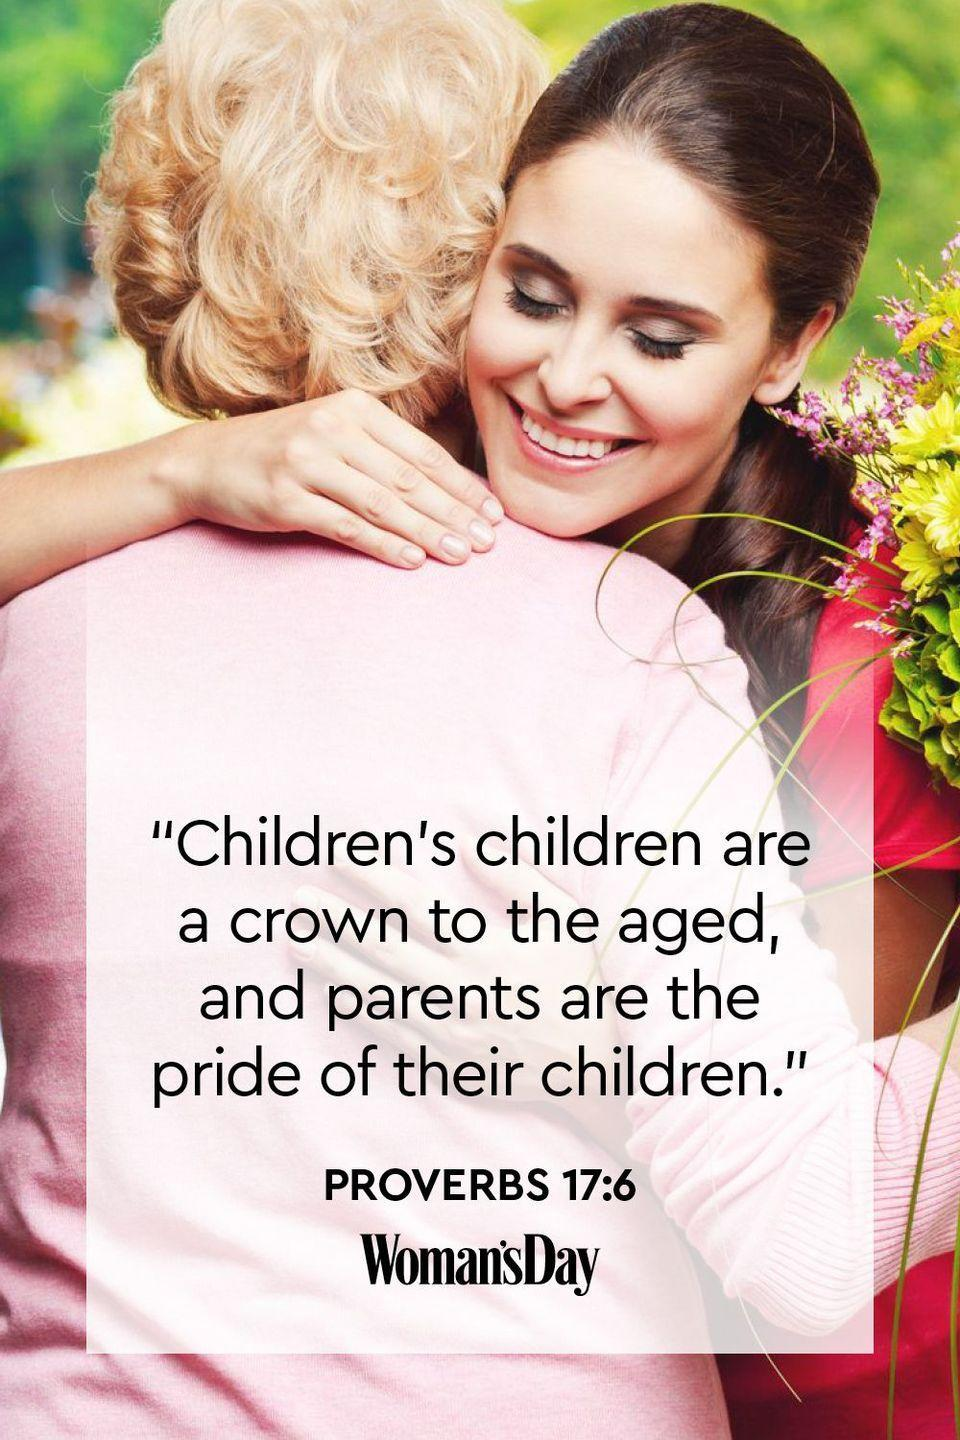 "<p>""Children's children are a crown to the aged, and parents are the pride of their children.""</p><p><strong>The Good News: </strong>When you live in a way that makes your children proud, you provide a legacy of character and faith.</p>"